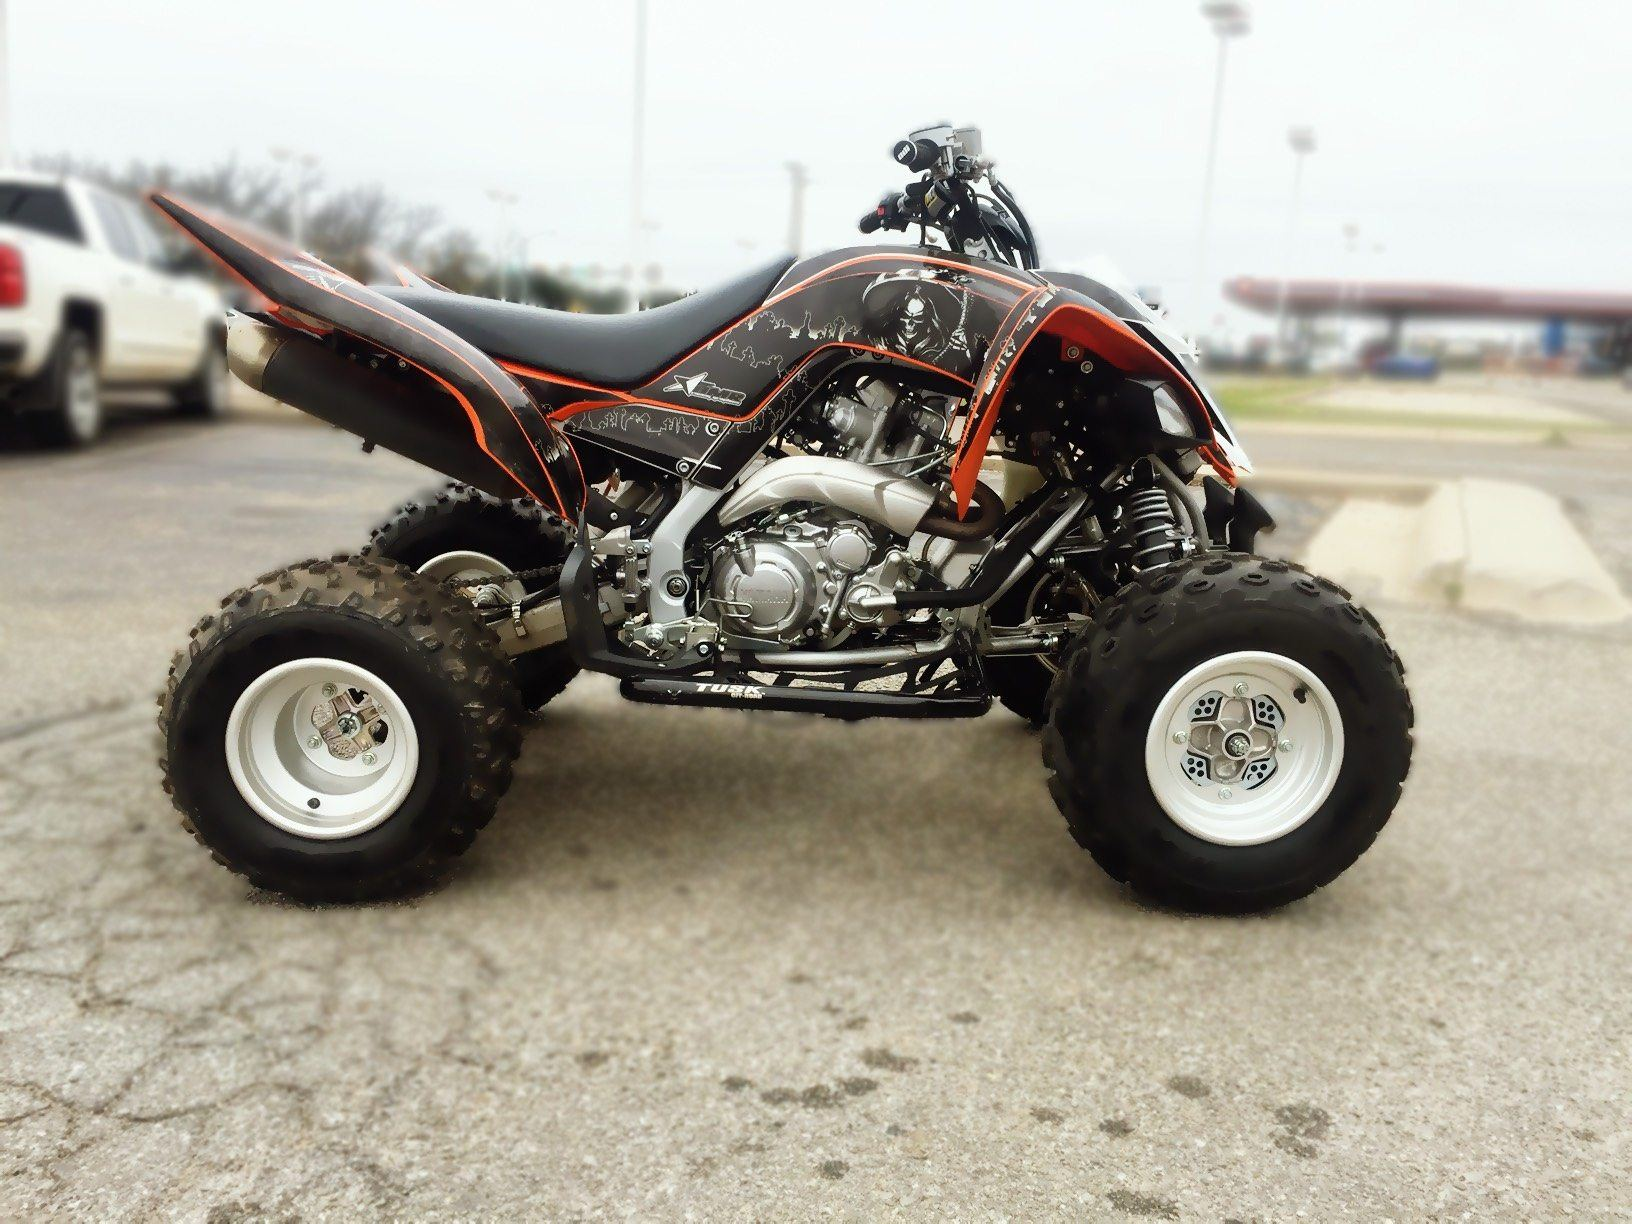 2014 Yamaha Raptor 700 for sale 5887